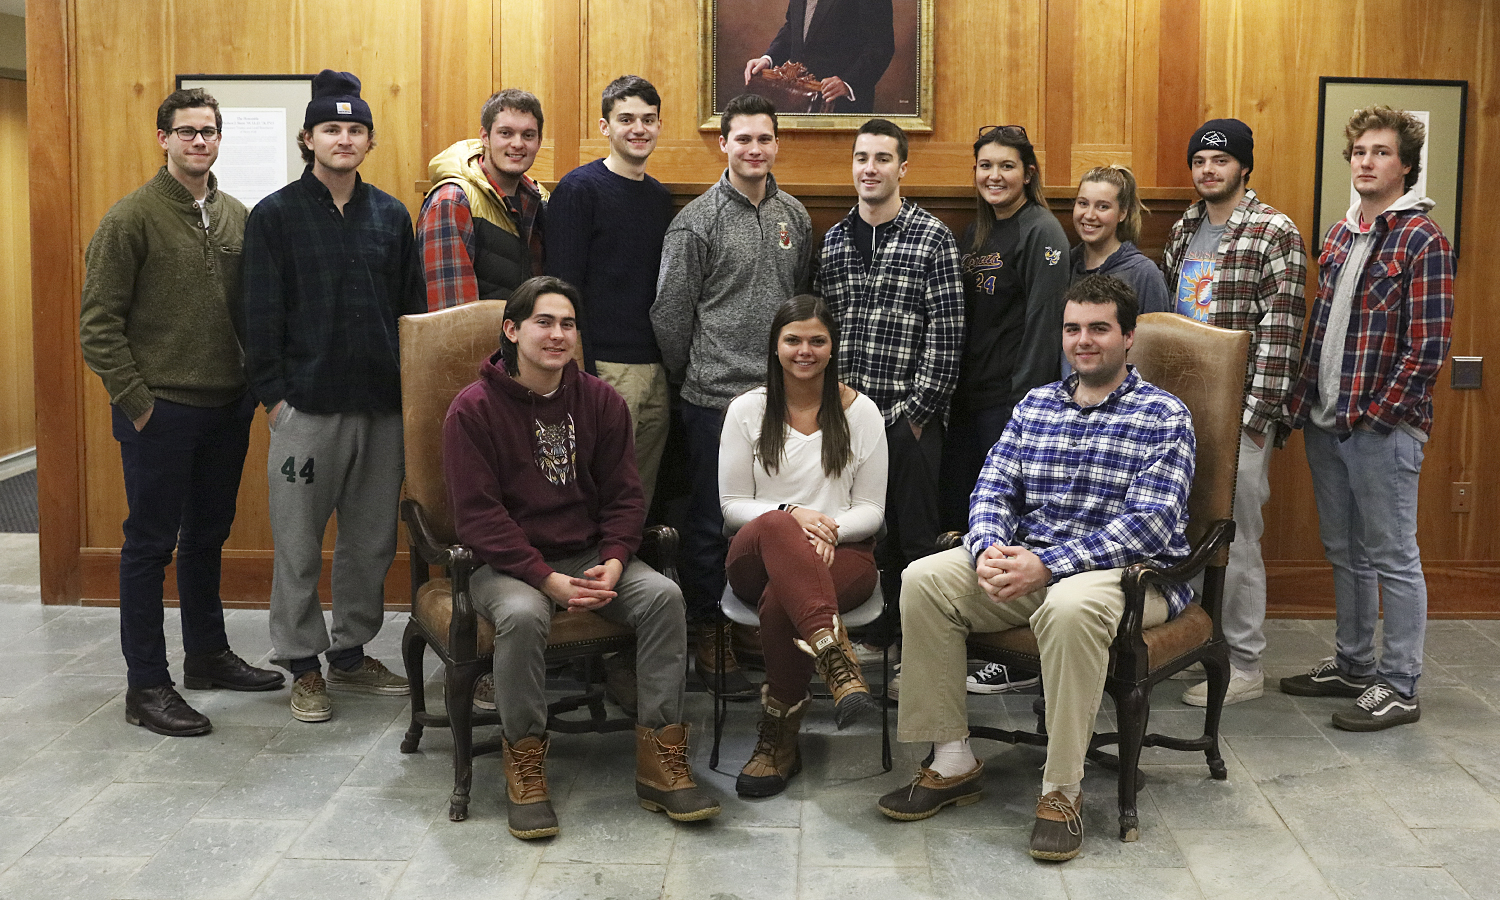 HWS Greek Life leadership gathers for a group photo in Stern Hall.